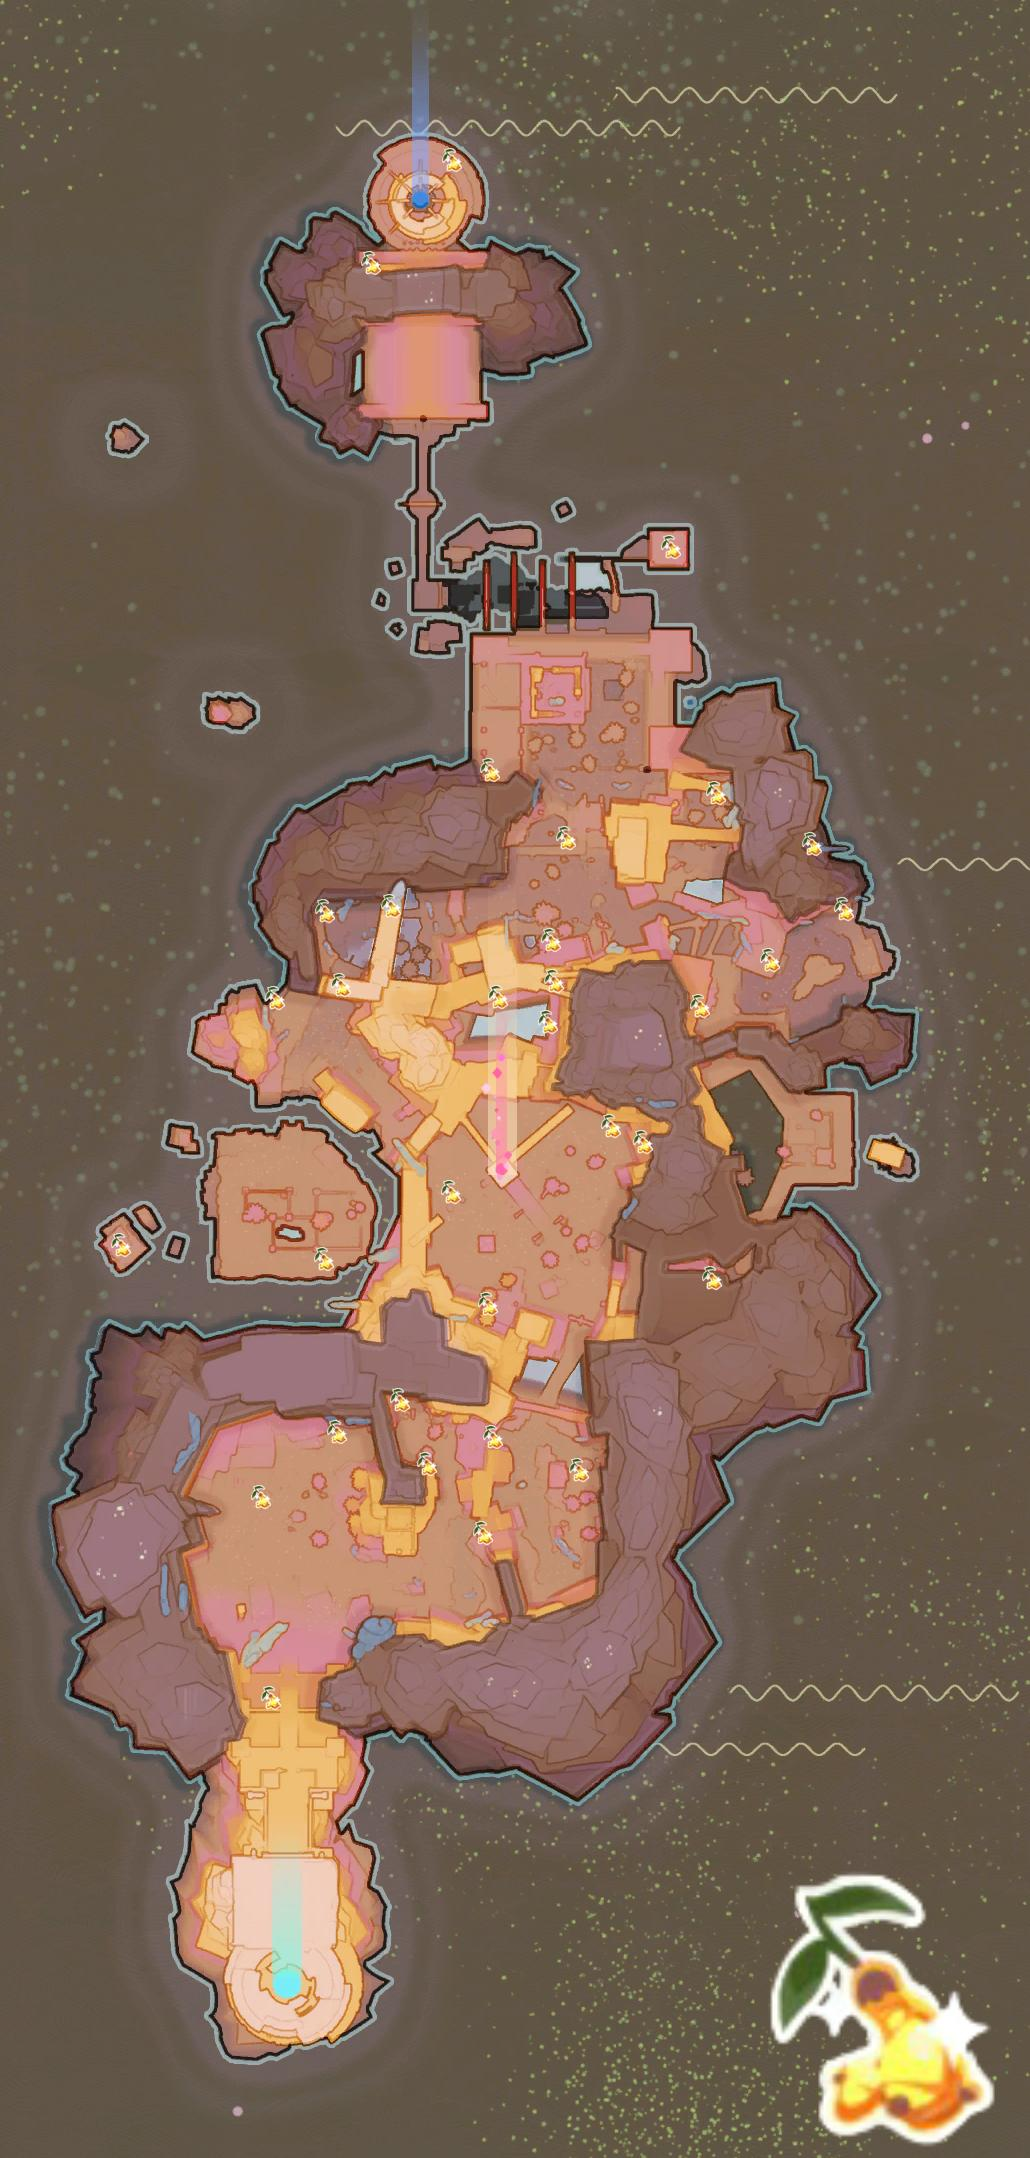 Slime Rancher - All Gilded Ginger Locations (Map)